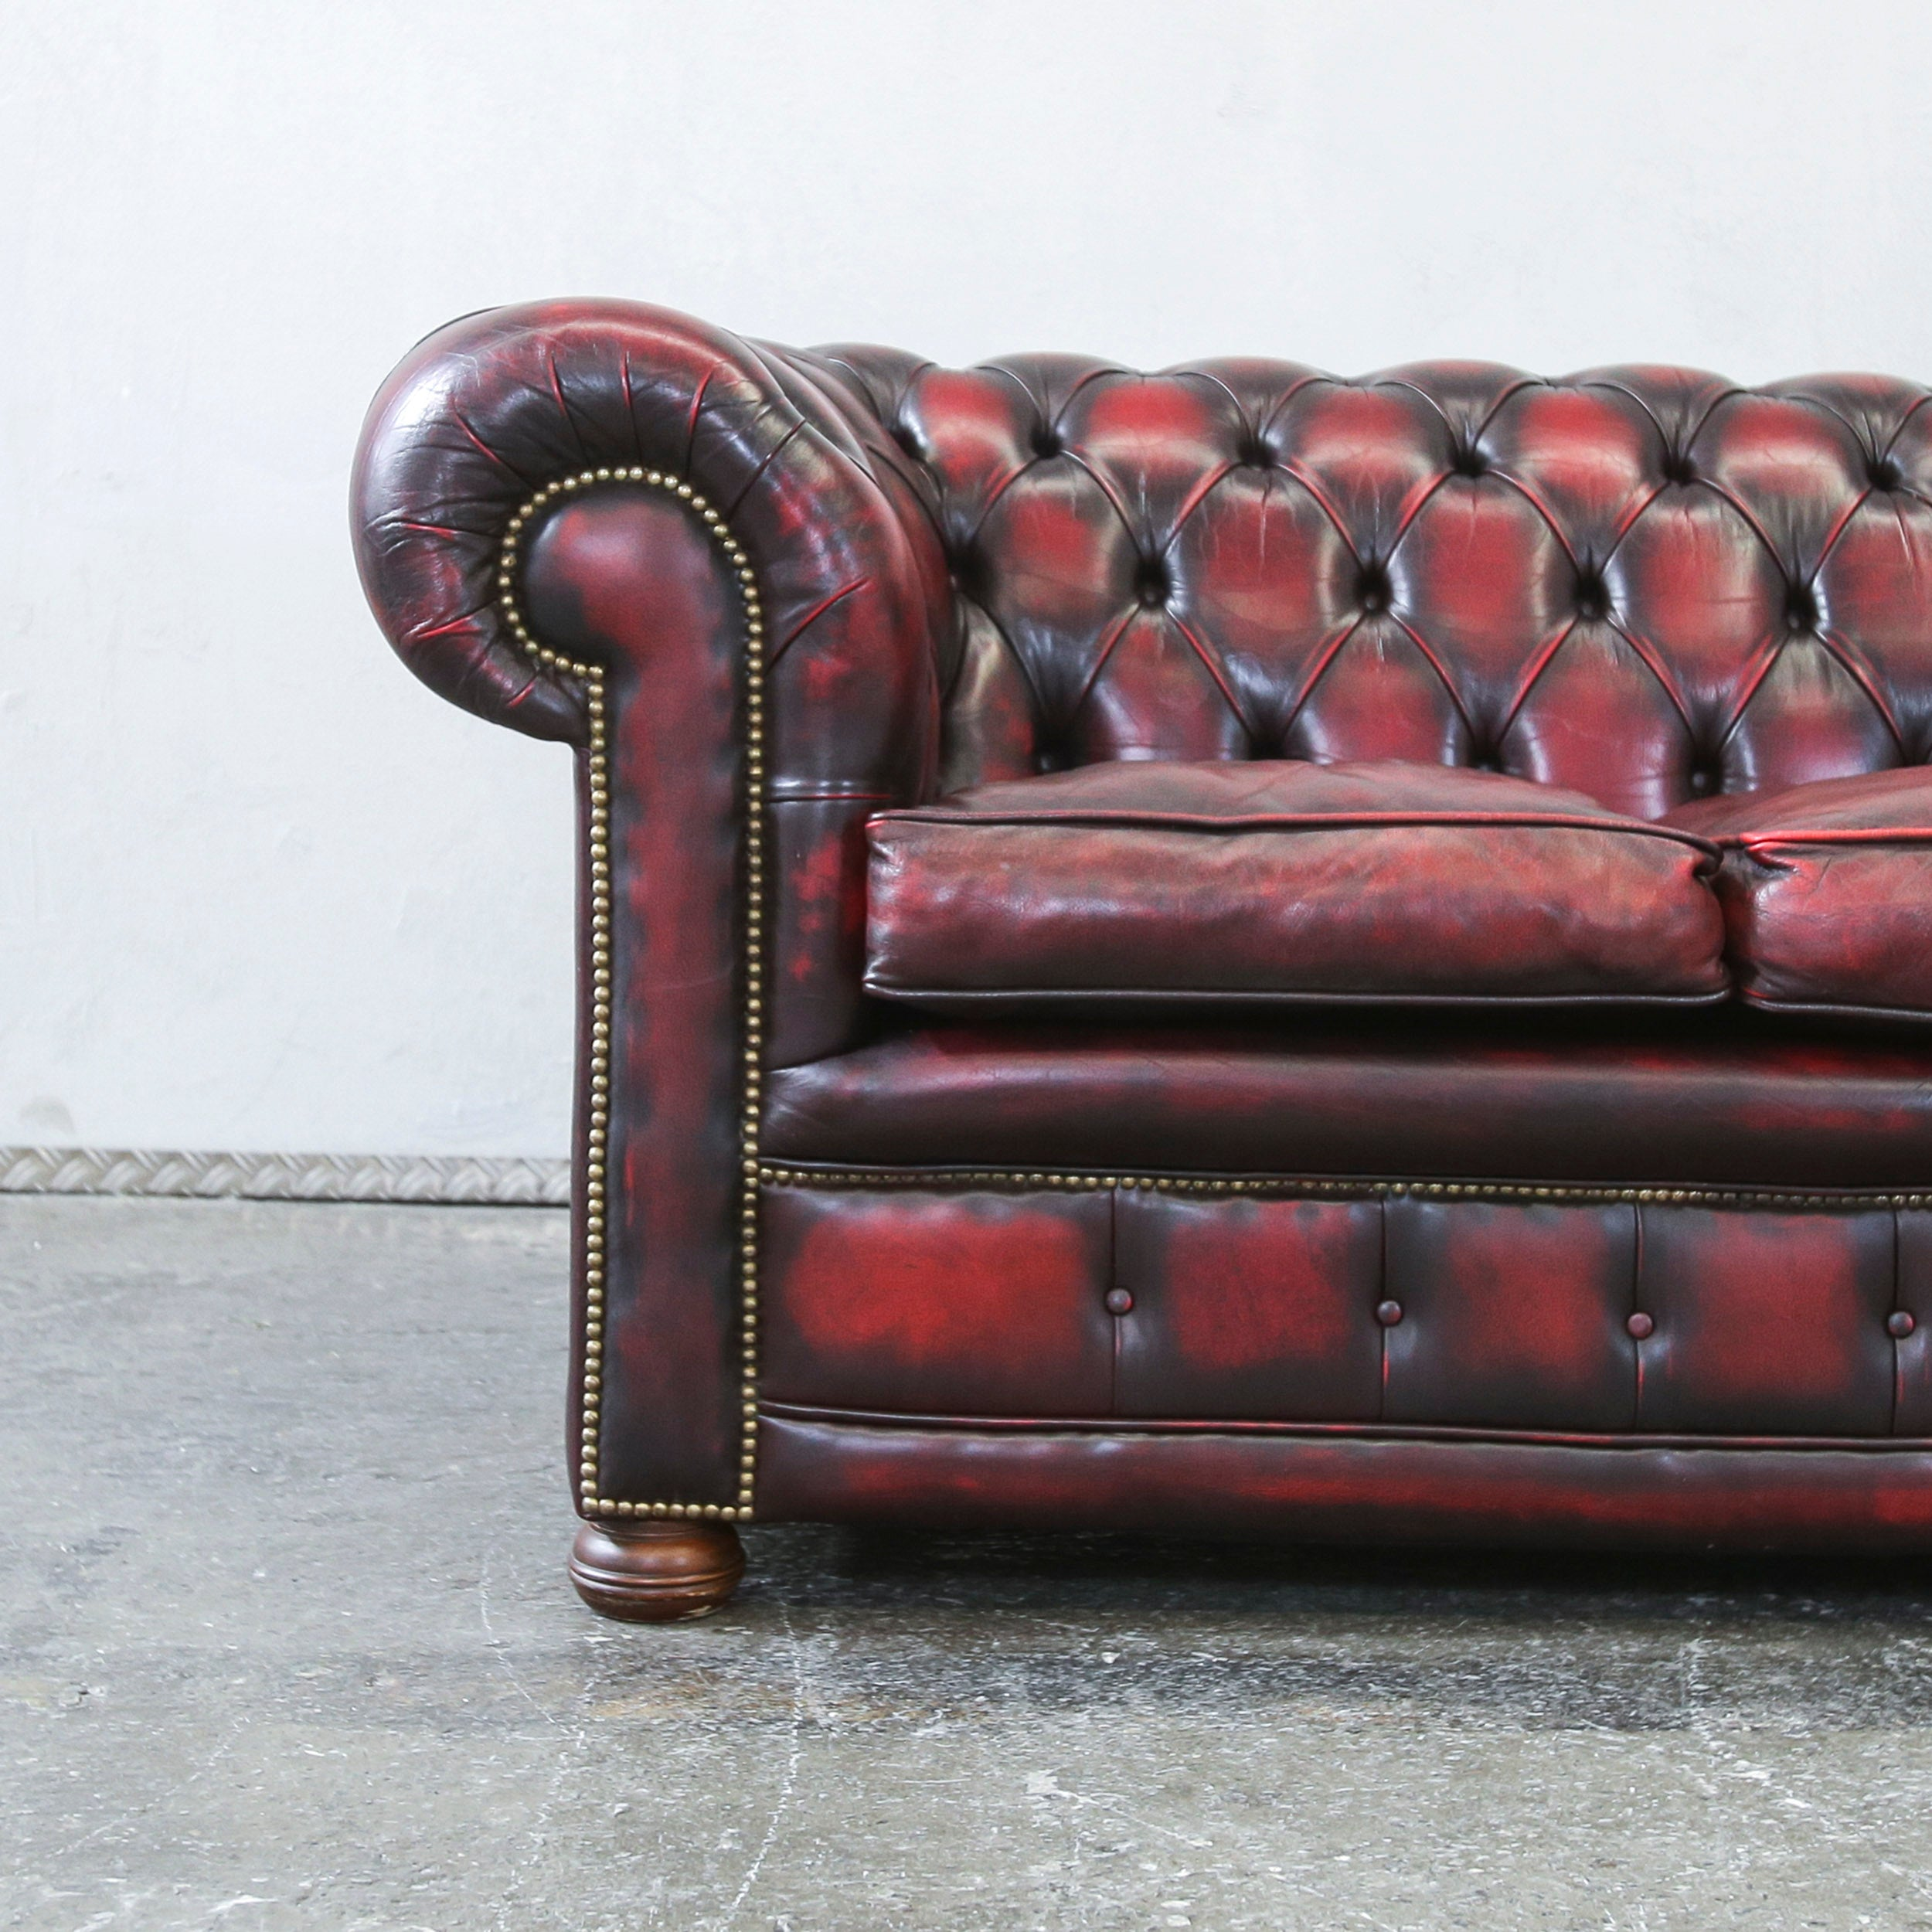 Chesterfield Sofa Leder Rot Chesterfield Leather Sofa Oxblood Red Three Seat Couch Retro Vintage